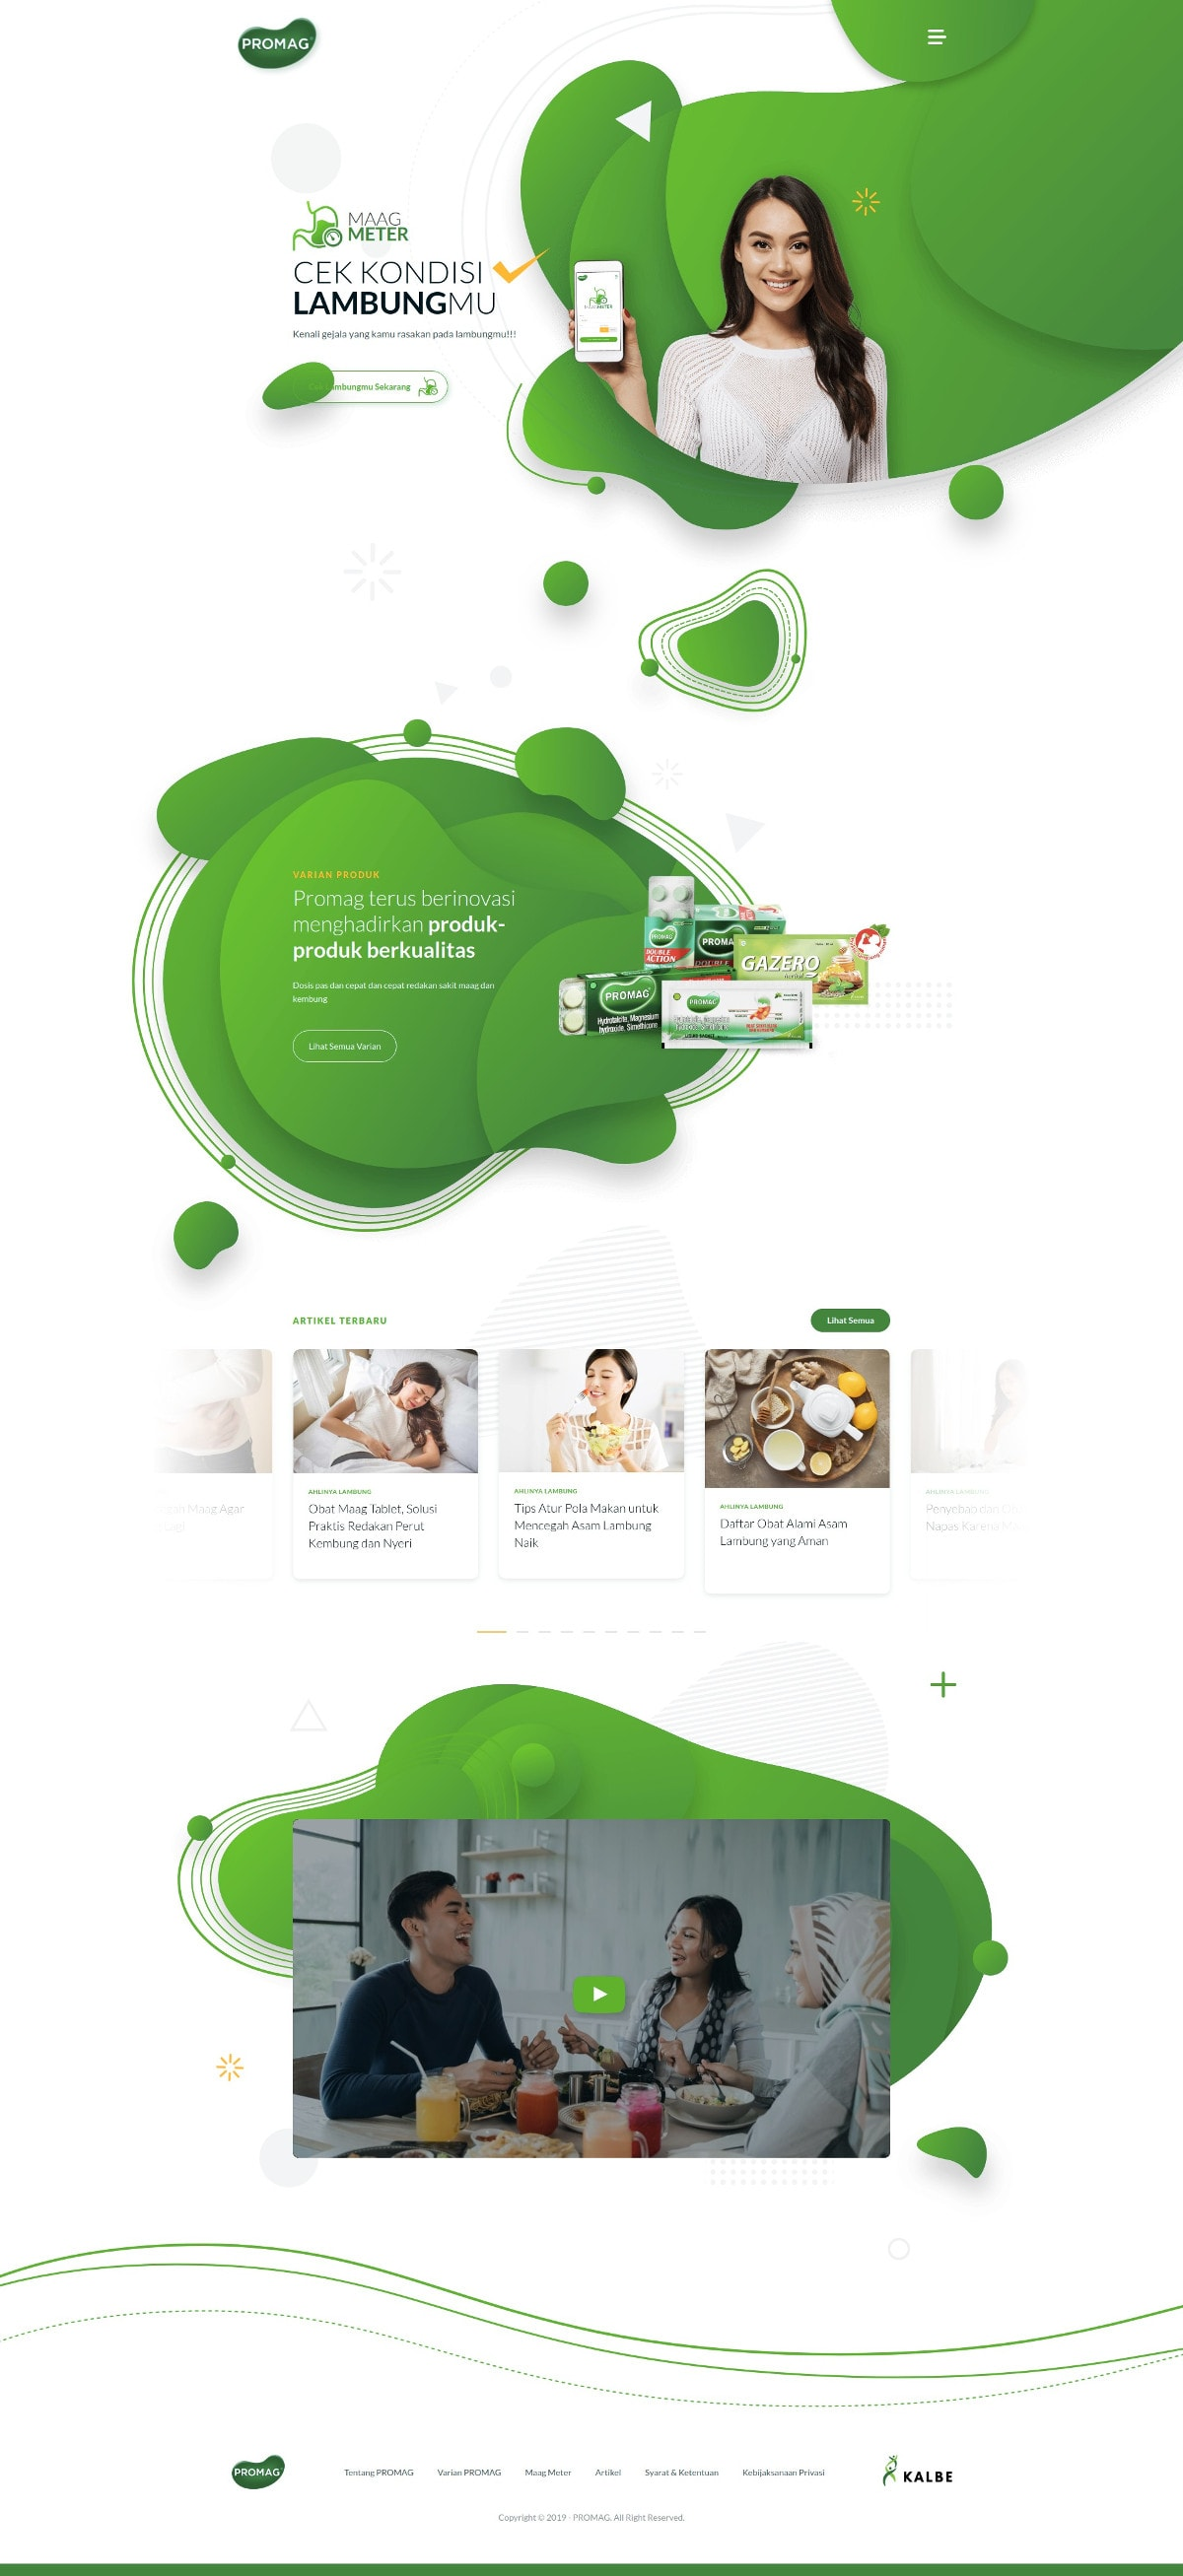 portfolio popout.id web development agency jakarta client Promag Website